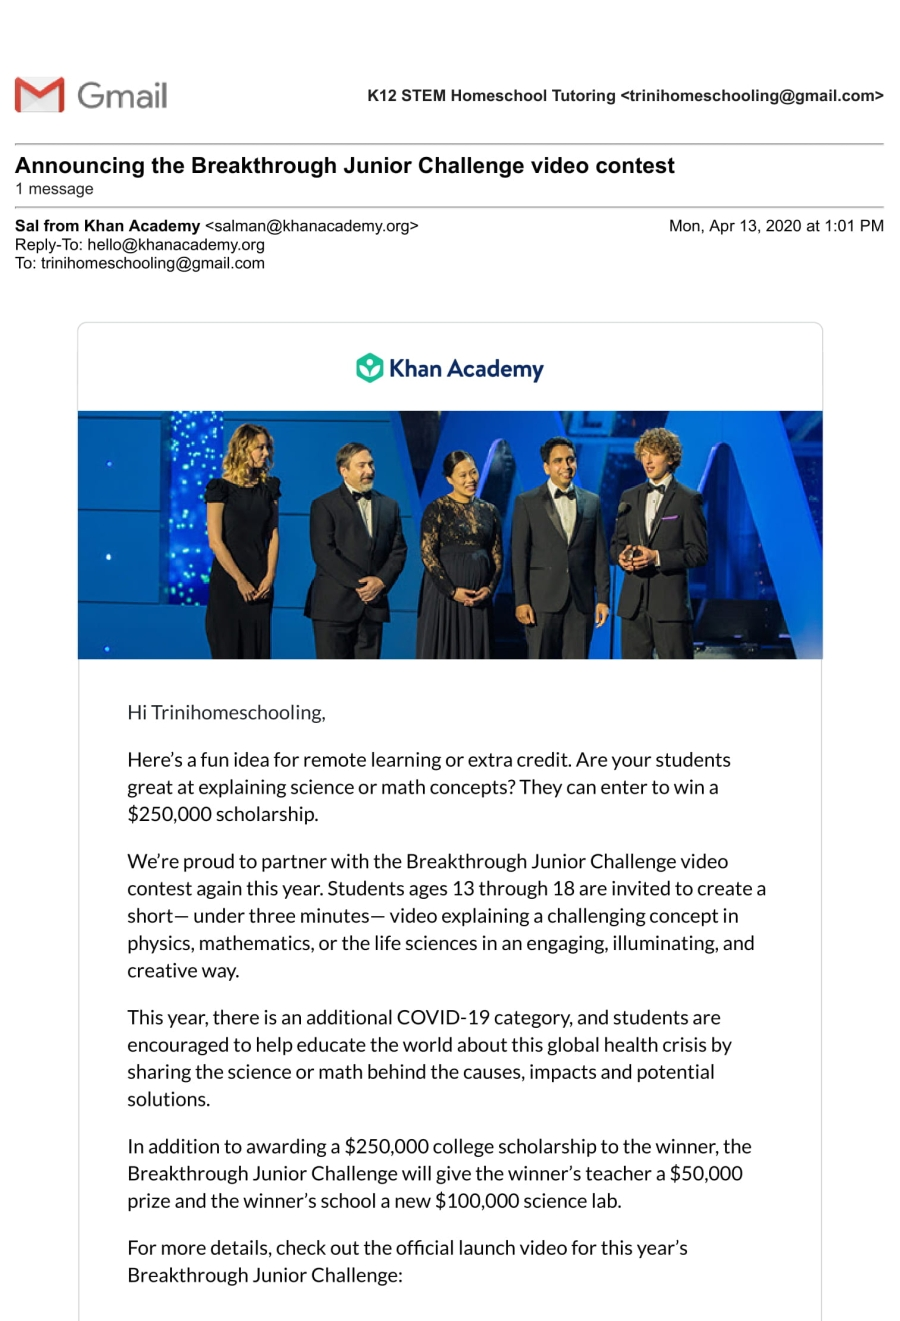 Gmail - Announcing the Breakthrough Junior Challenge video contest-1